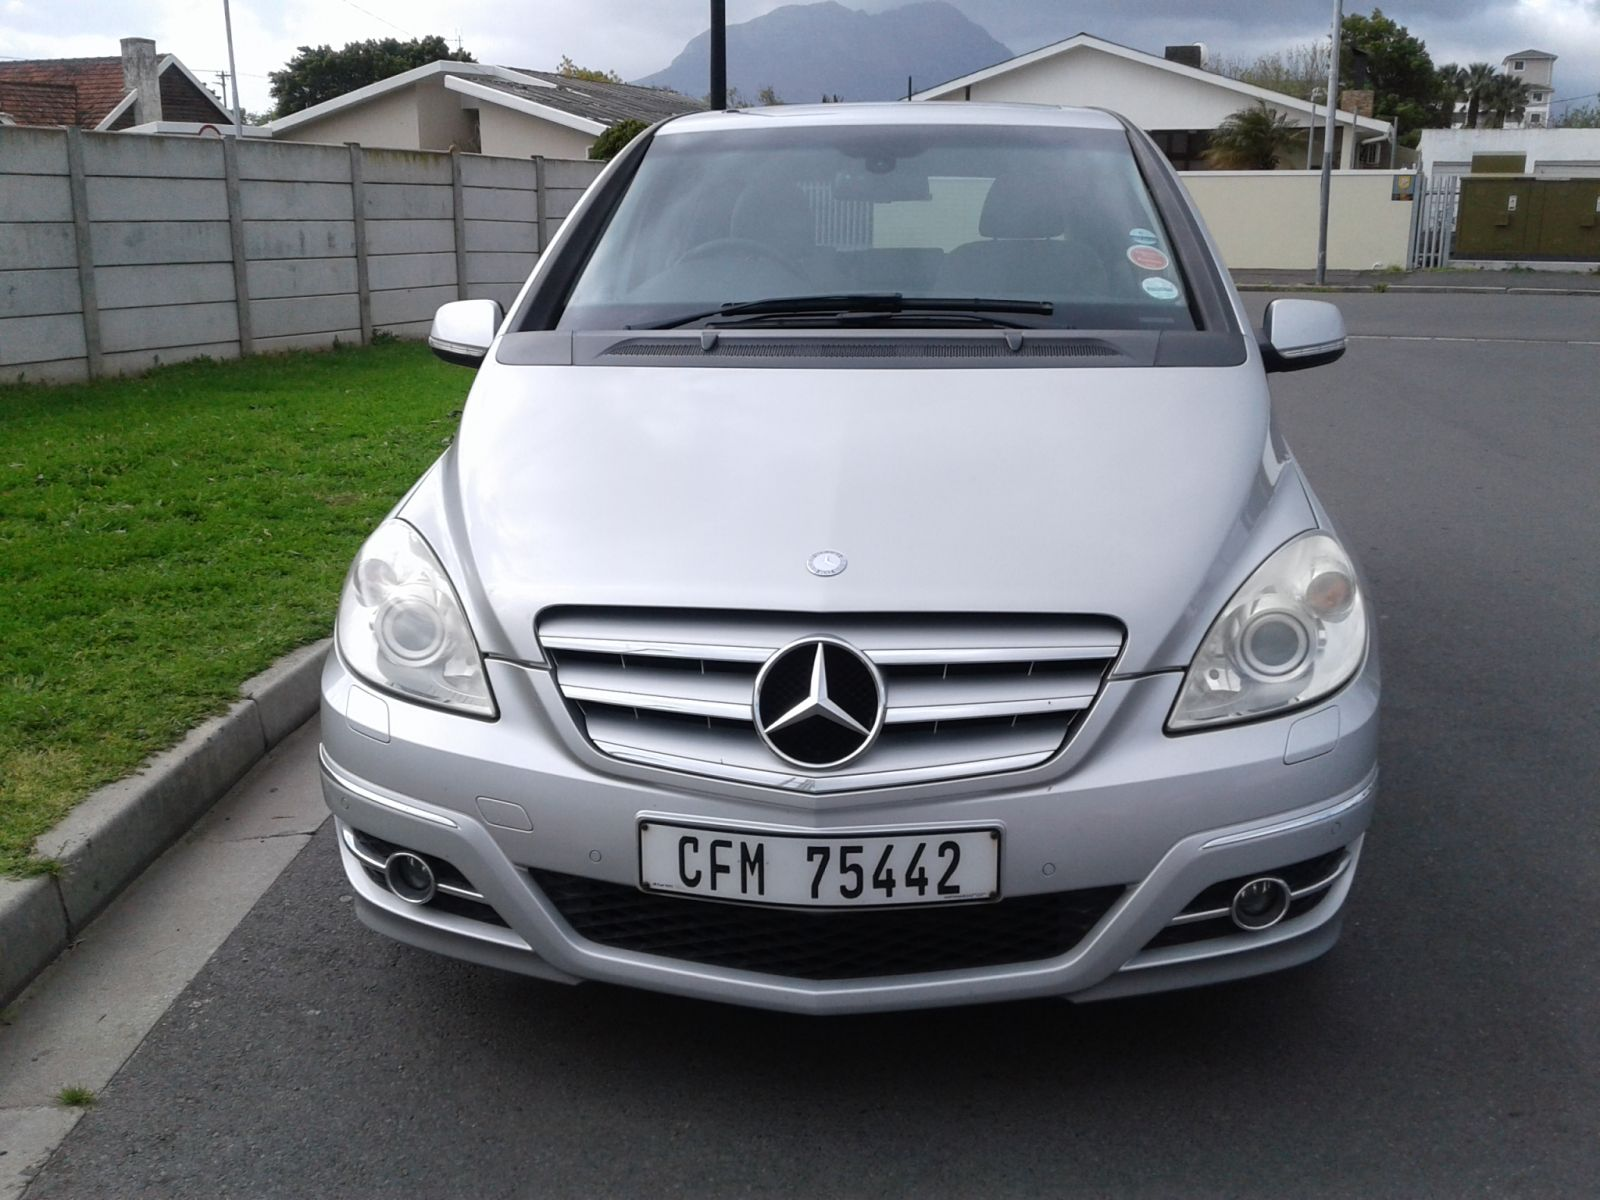 2009 MERCEDES-BENZ B-CLASS B200 TURBO